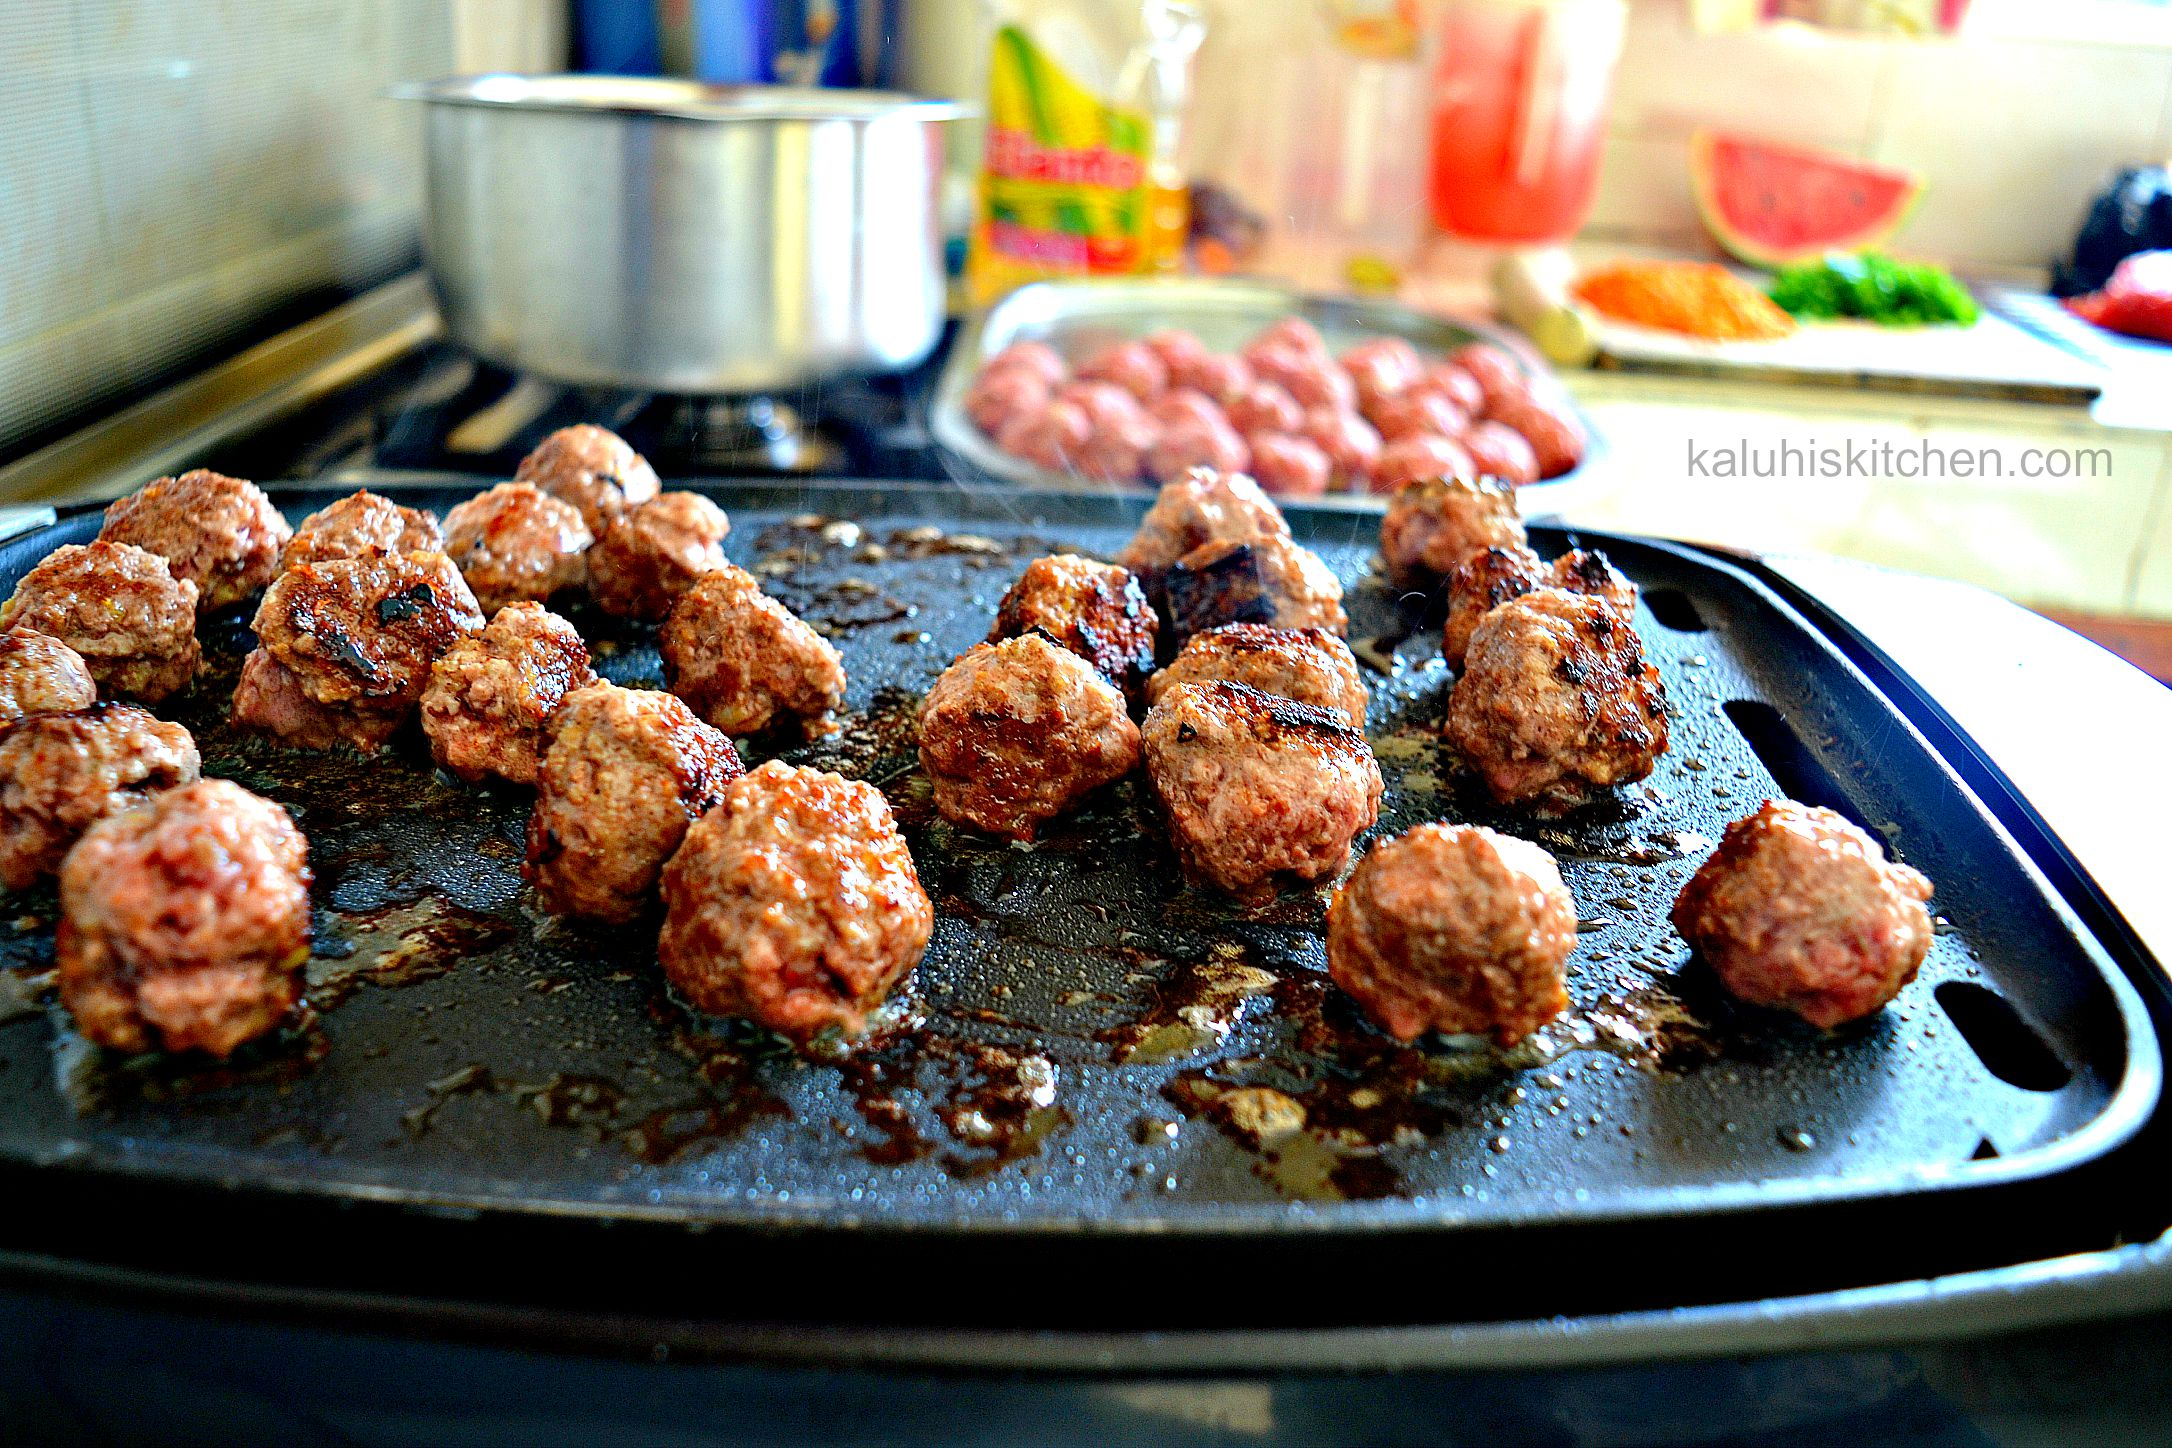 grilling meatballs for the tikka masala gives them a pleasant char and shortens cook time_kaluhiskitchen.com